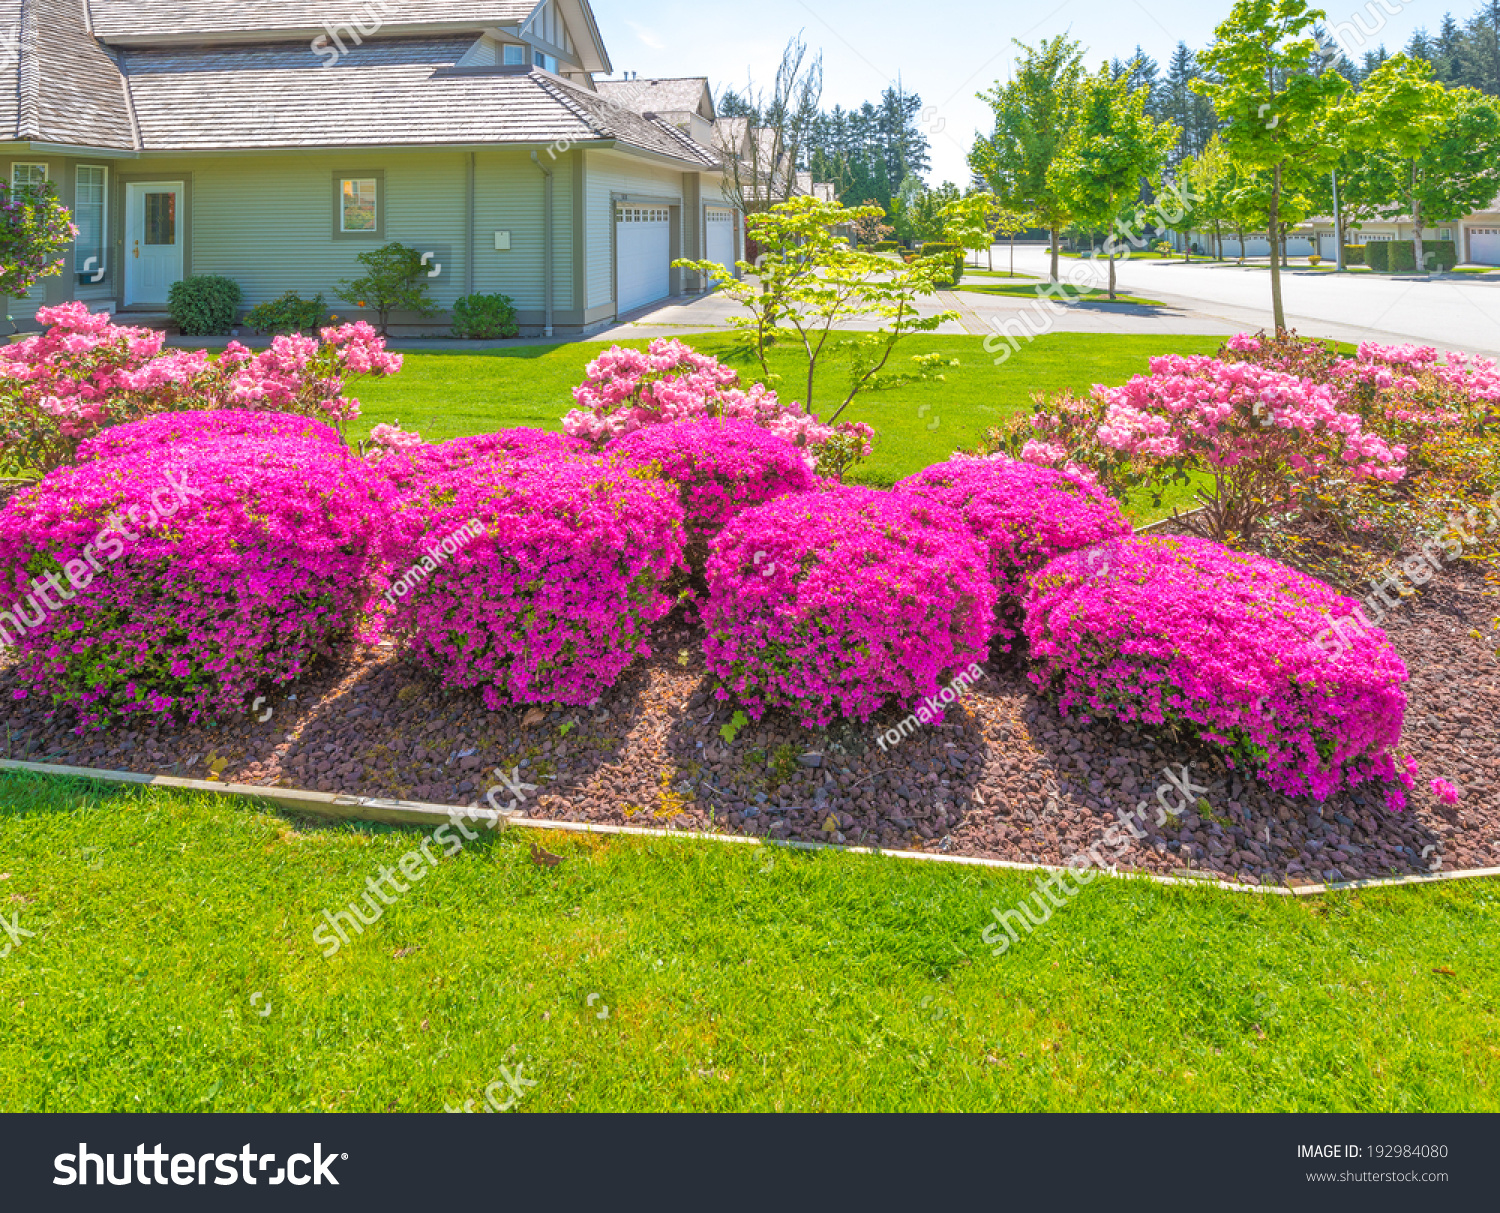 Great neighborhood nicely decorated flowerbed front stock for Colorful front yard landscaping